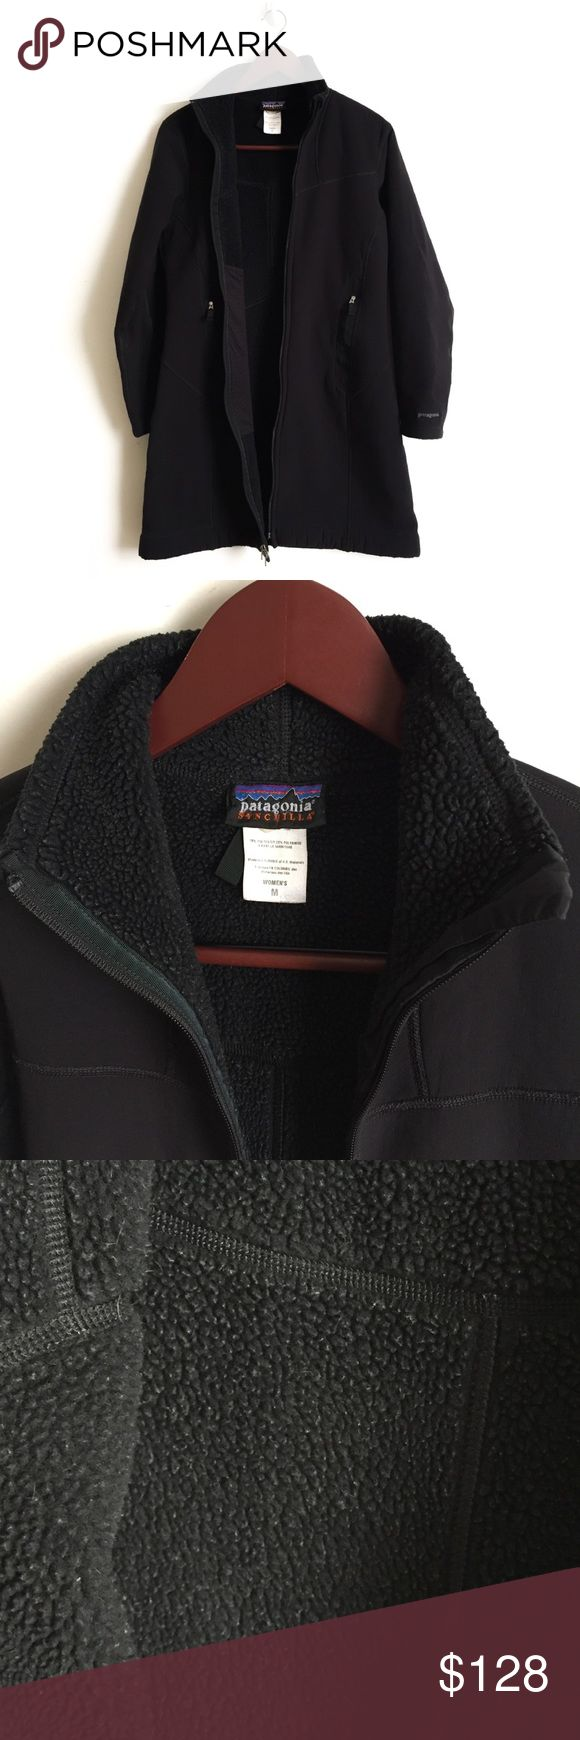 """Patagonia Synchilla Coat ▫️Patagonia Synchilla Jacket  ▫️Color: Black  ▫️Measures approximately:      Shoulders: 15.5""""      Sleeves: 23.5""""      Length: 35.5""""      Pit-to-pit: 19.0""""      Bottom: 23.0"""" ▫️Condition: Used, Normal wear, Interior fleece pilling (see picture 3) 🚫No Trades🚫 Patagonia Jackets & Coats"""